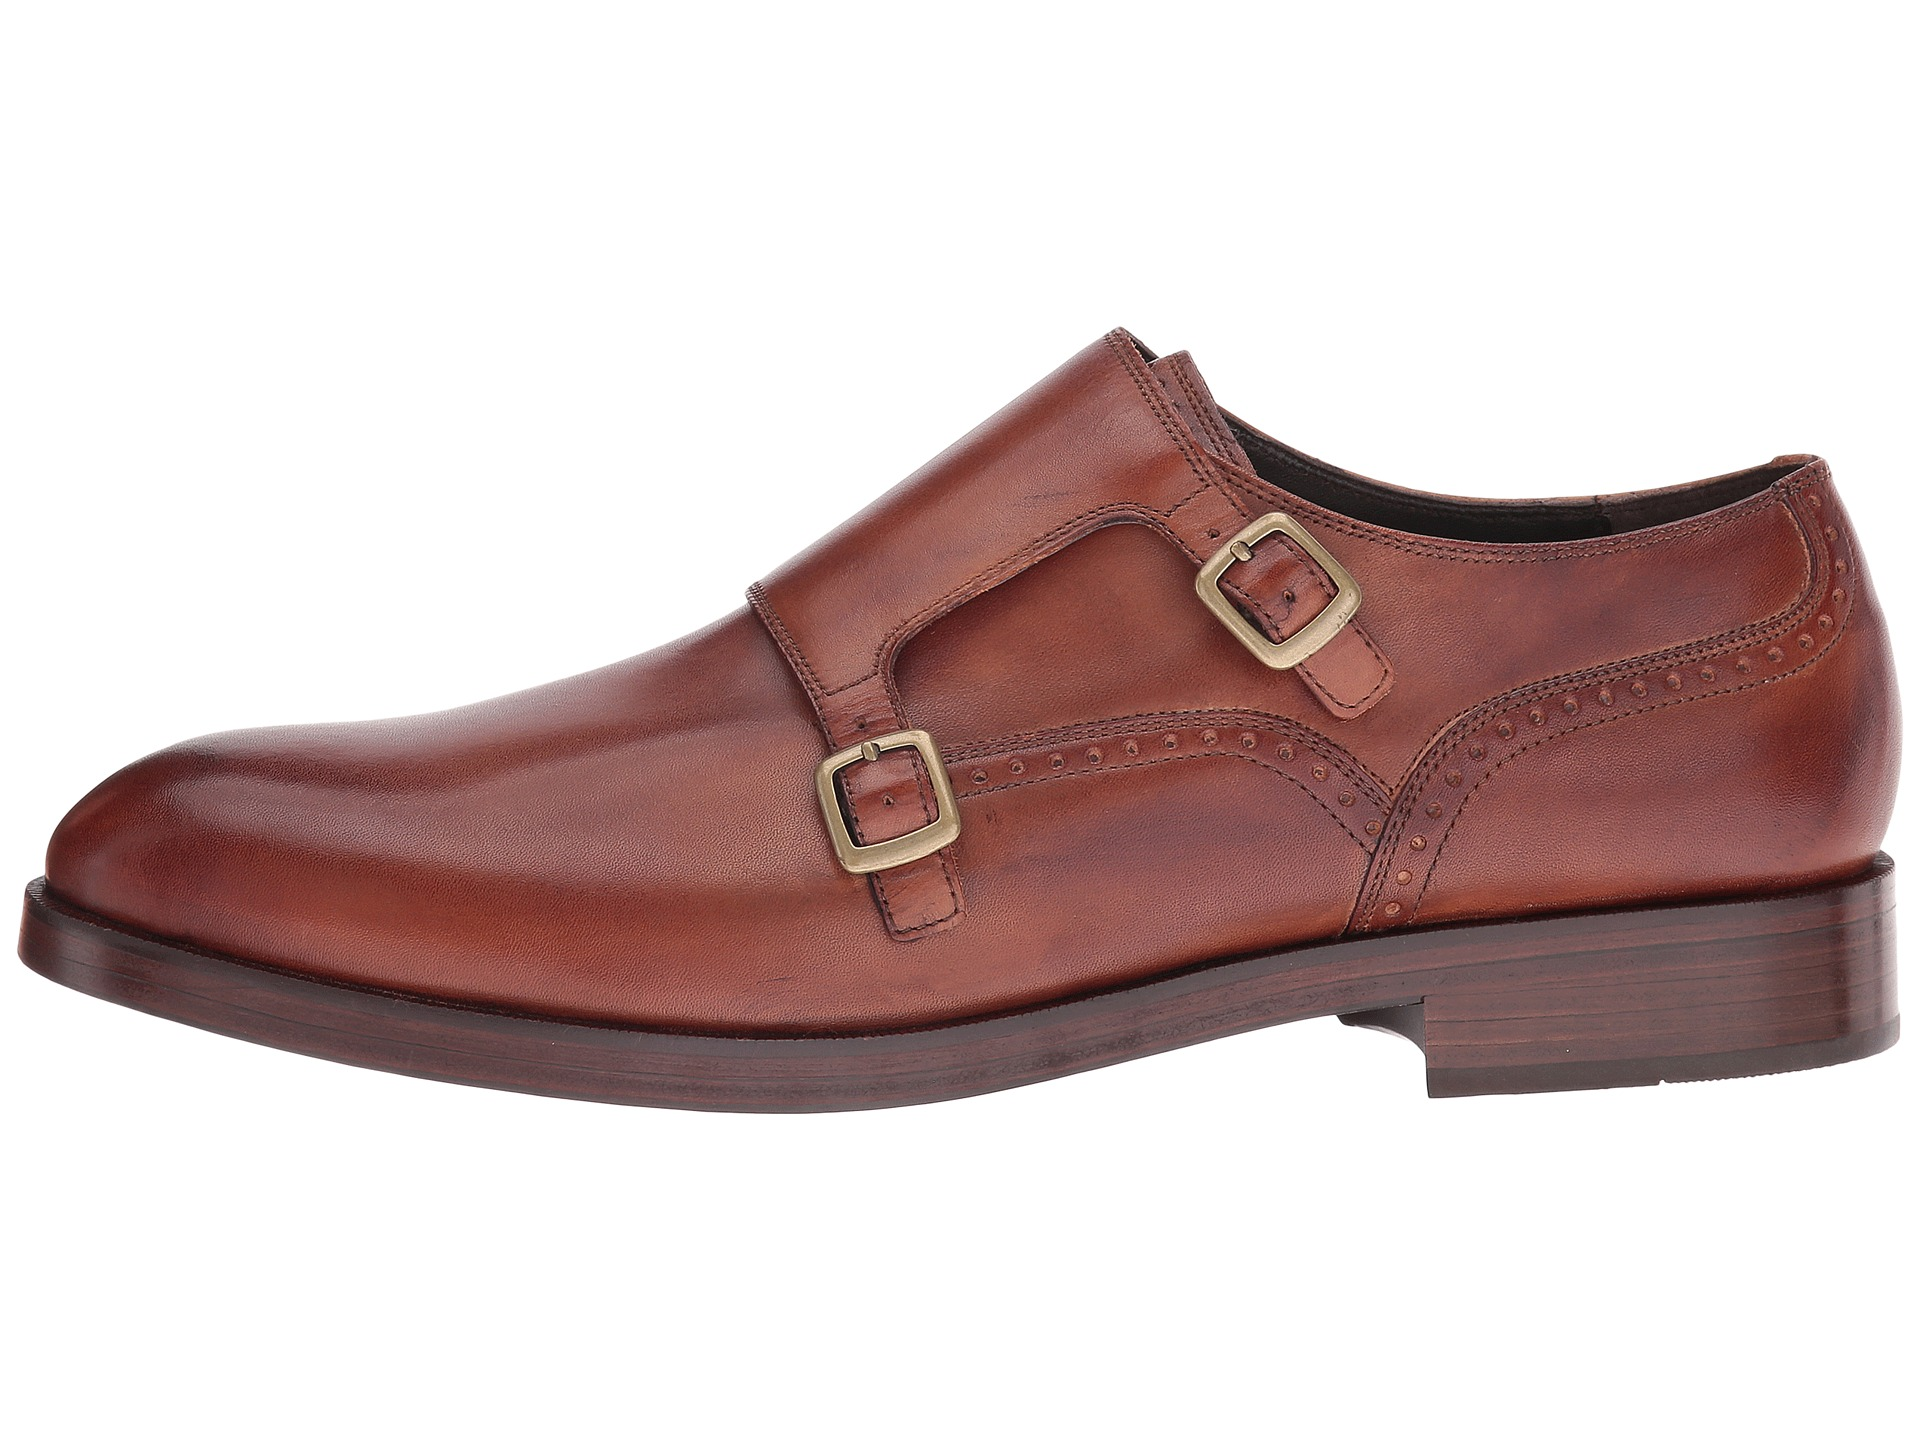 Cole haan double monk strap